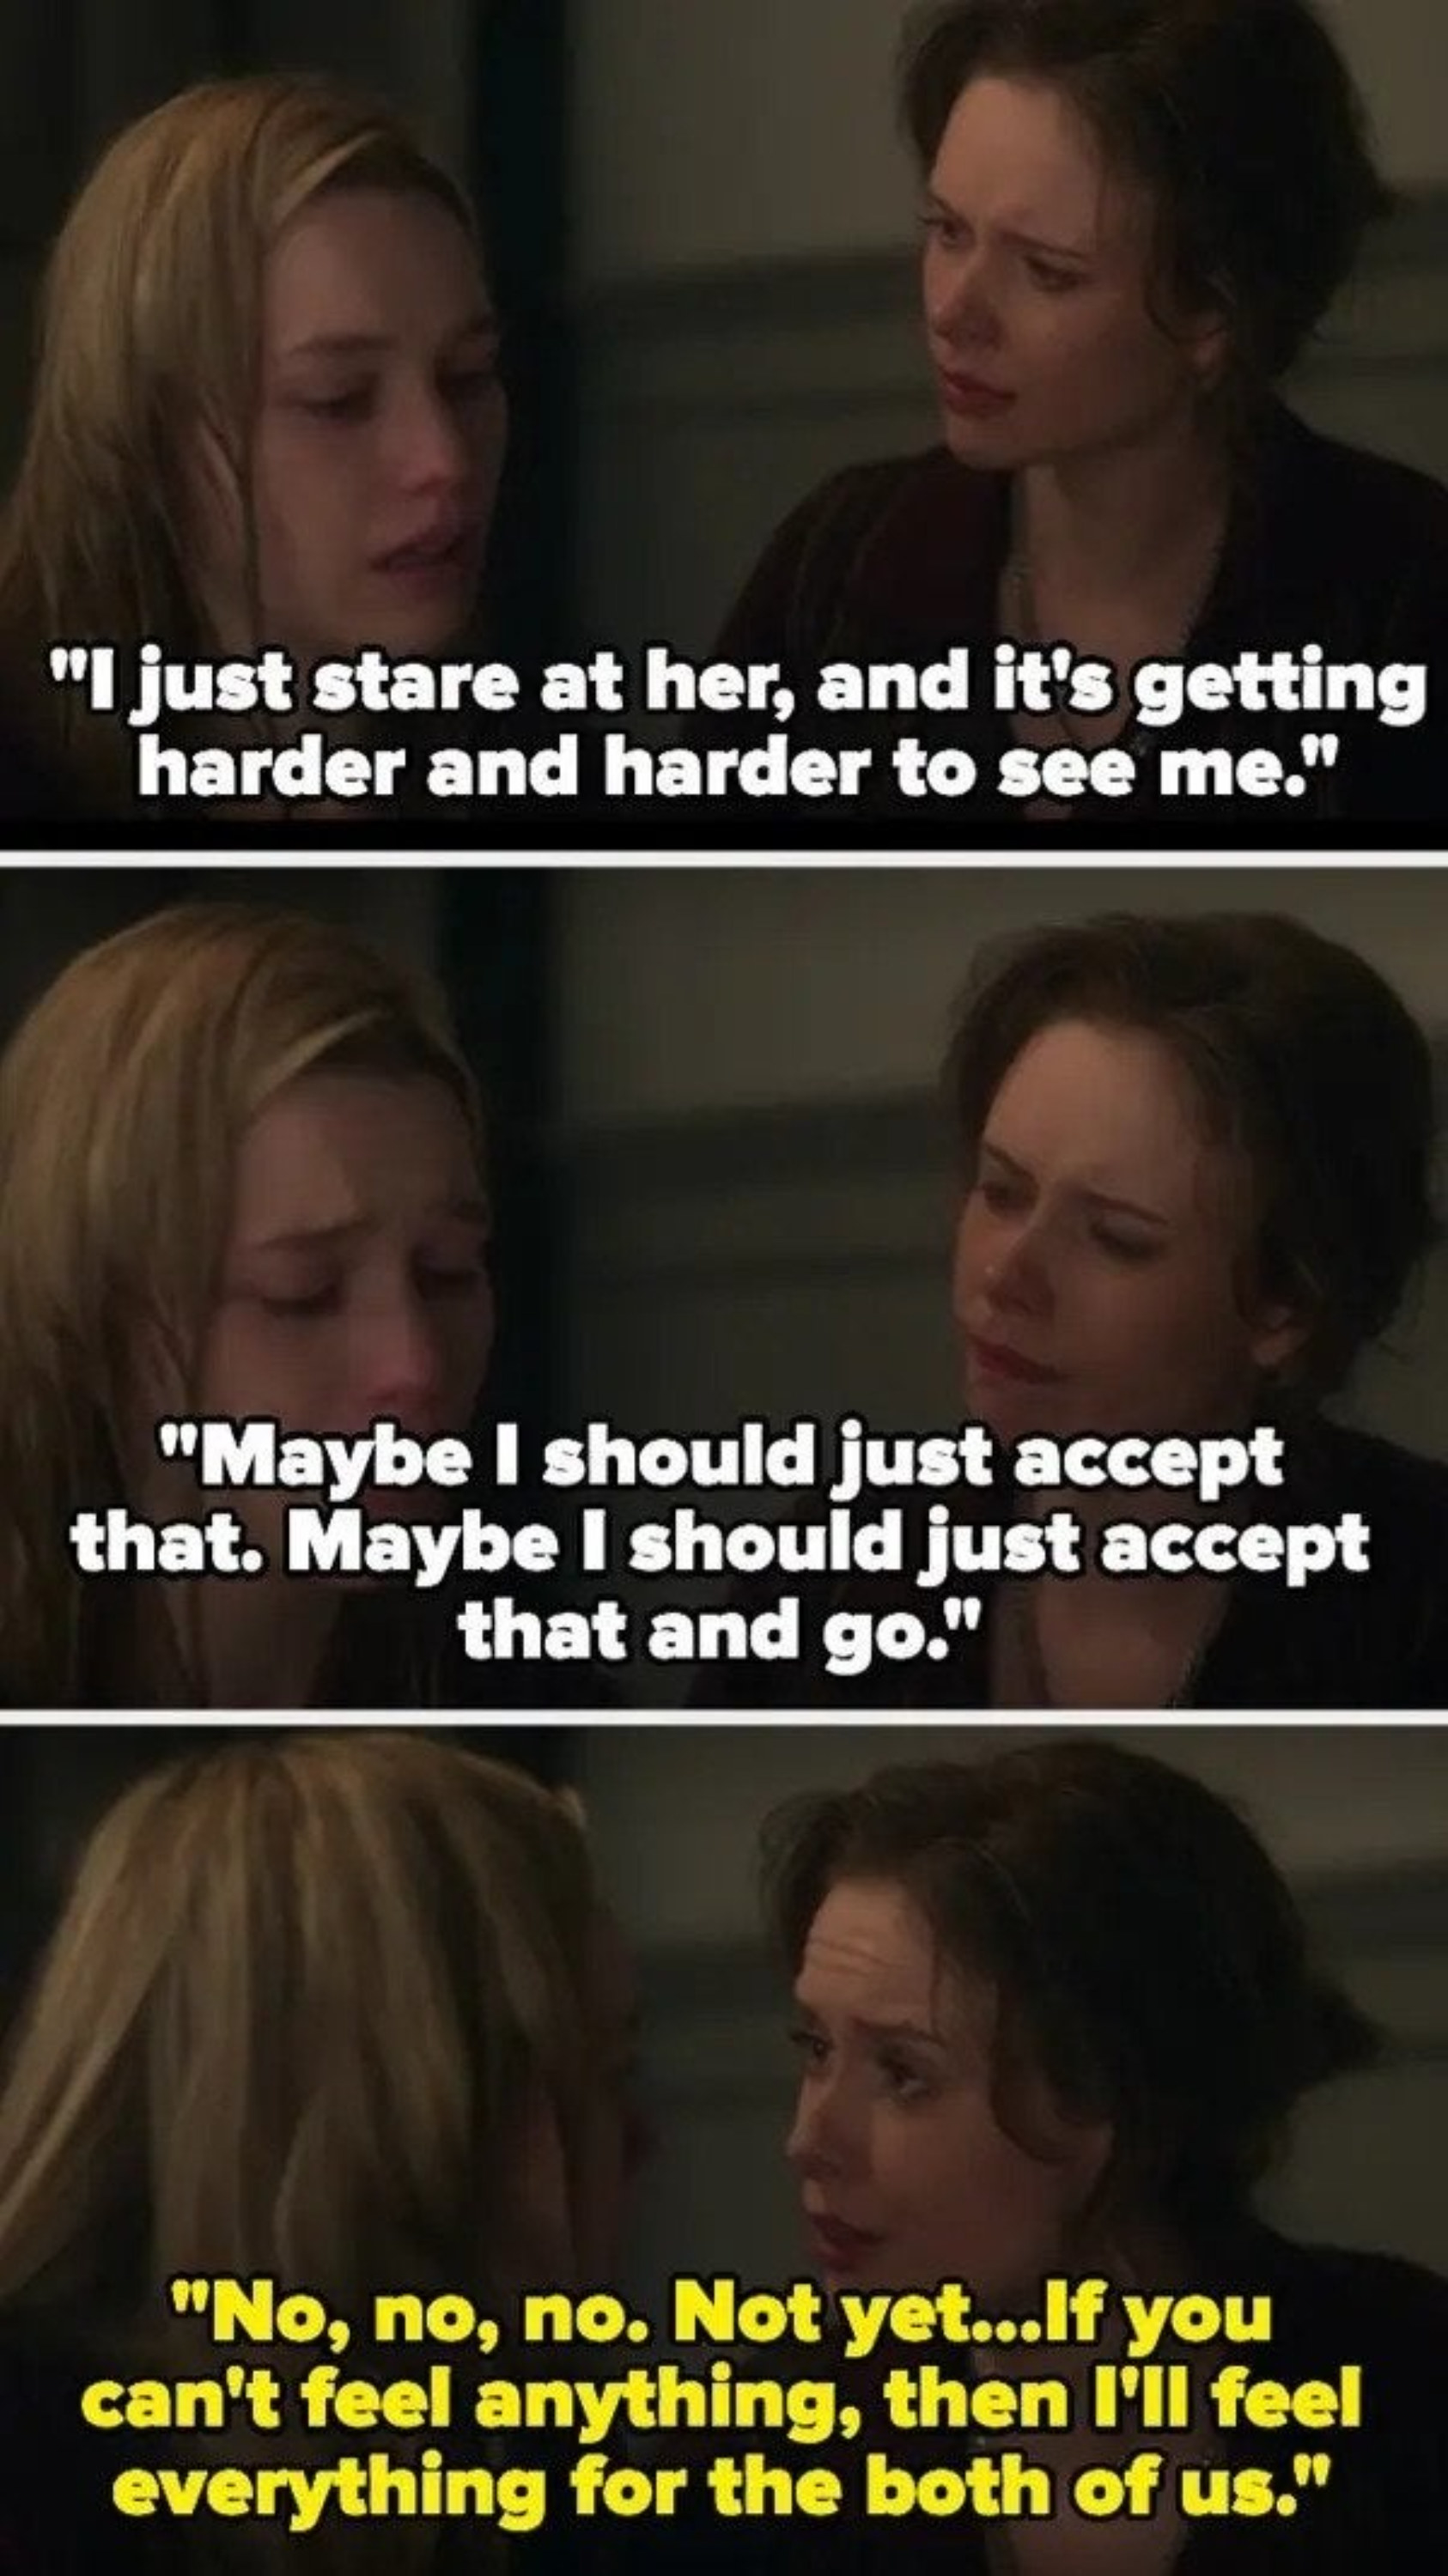 Dani says it's getting harder and harder to see herself in her reflection, and maybe she should accept that and go, but Jamie tells her not yet, and that she'll feel for the both of them